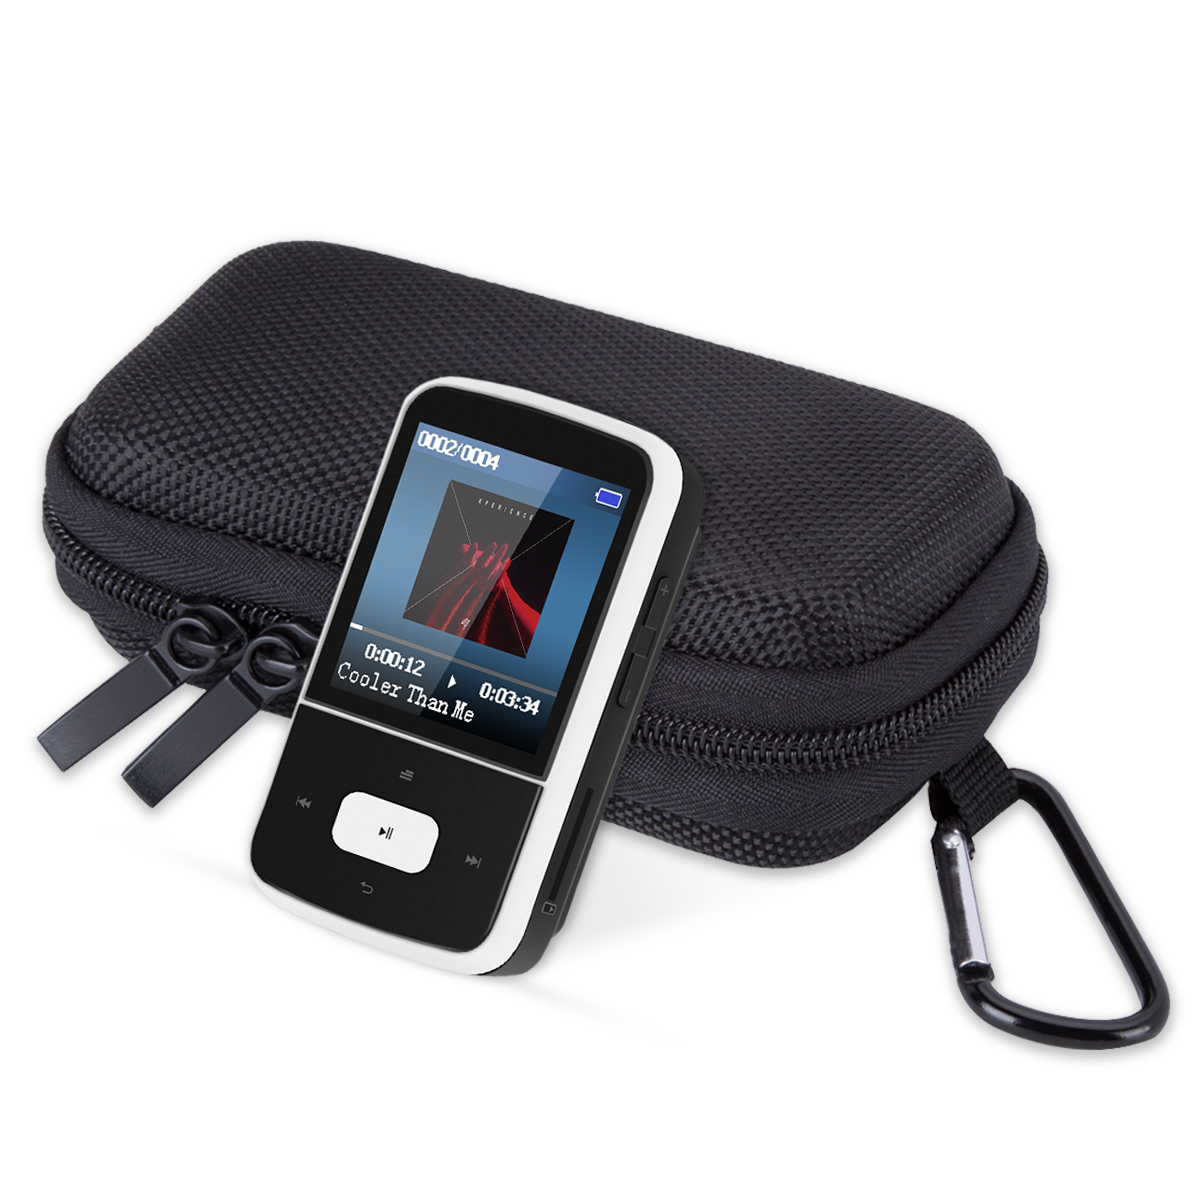 AGPTEK G05W 8GB Bluetooth Clip MP3 Player with MP3 player case, Lossless Sound,Supports up to 64GB,Black